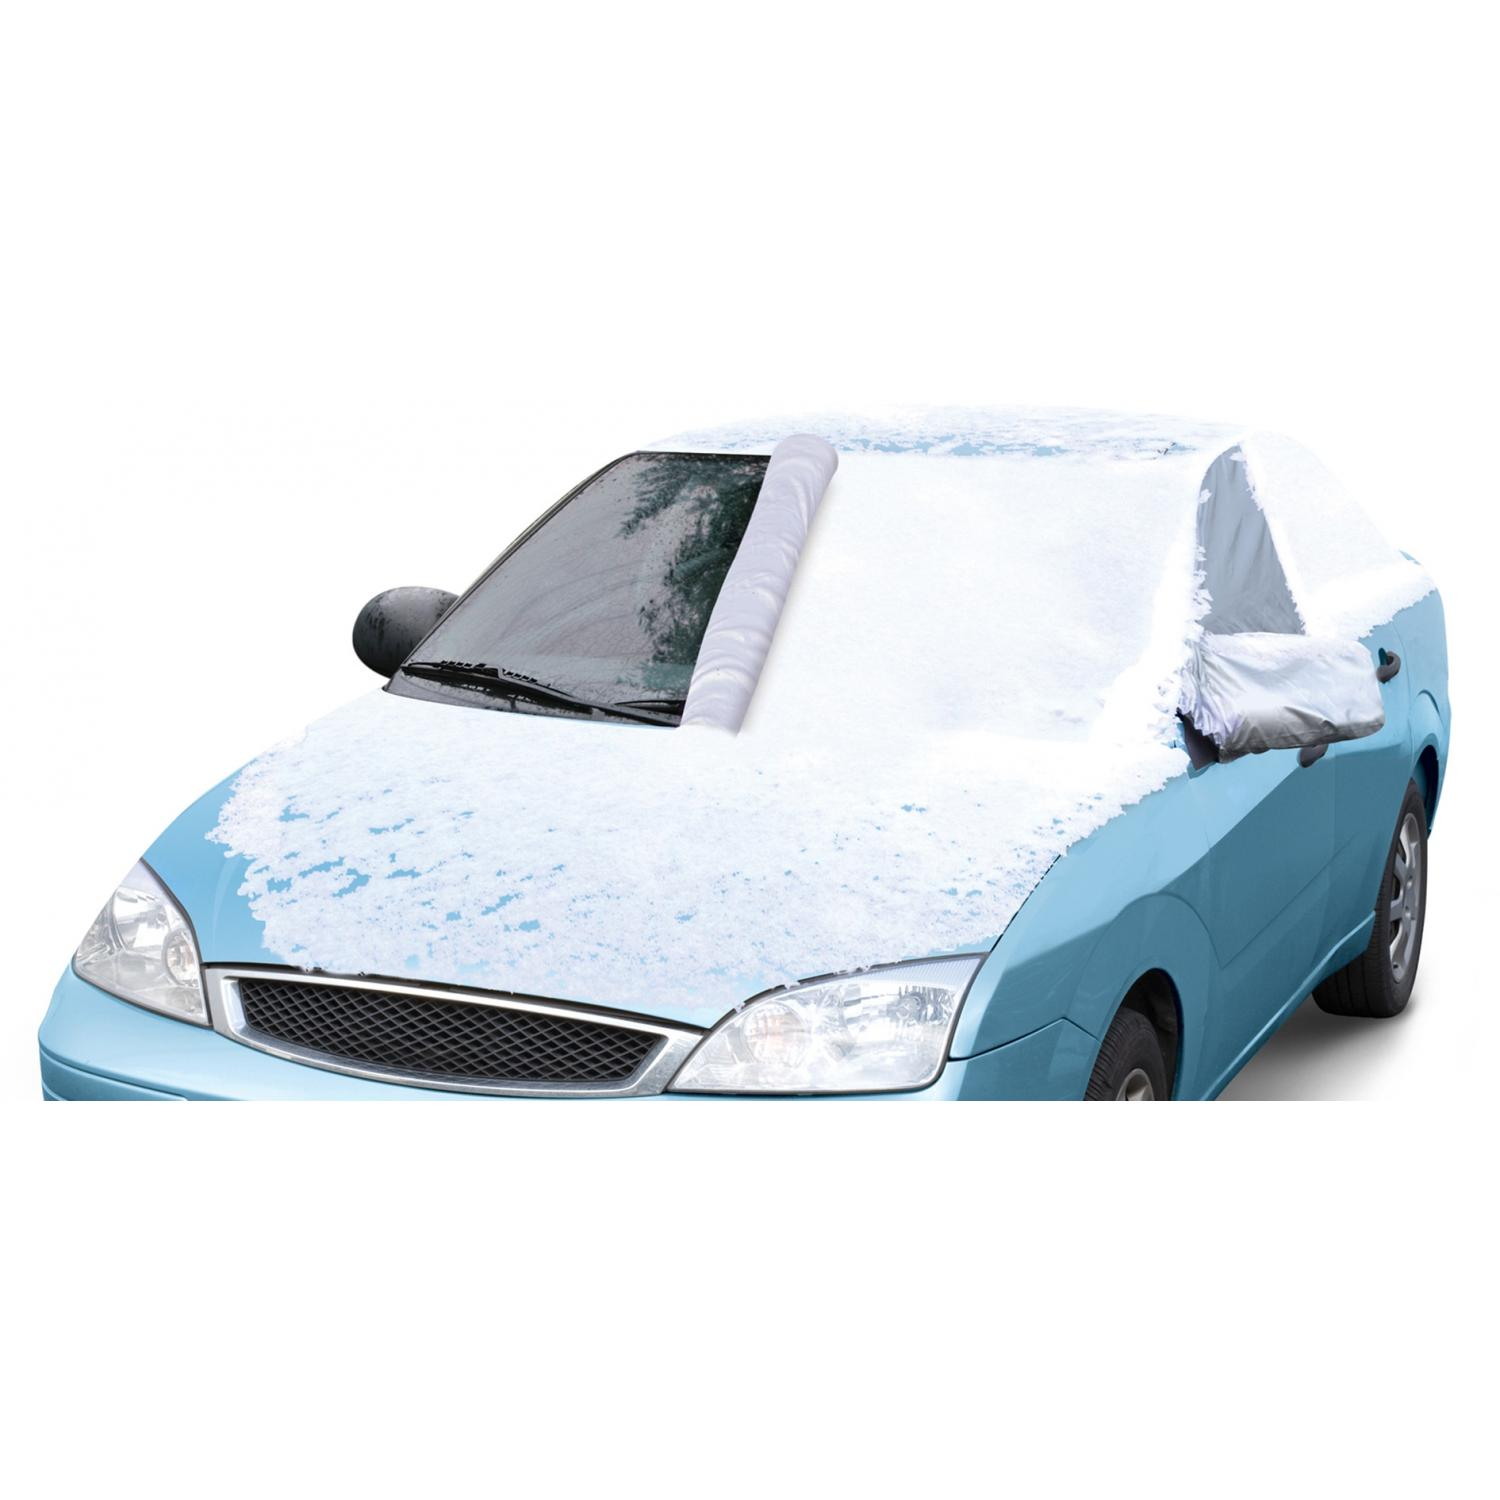 Classic Accessories Deluxe Windshield Snow Cover - Silver - Large